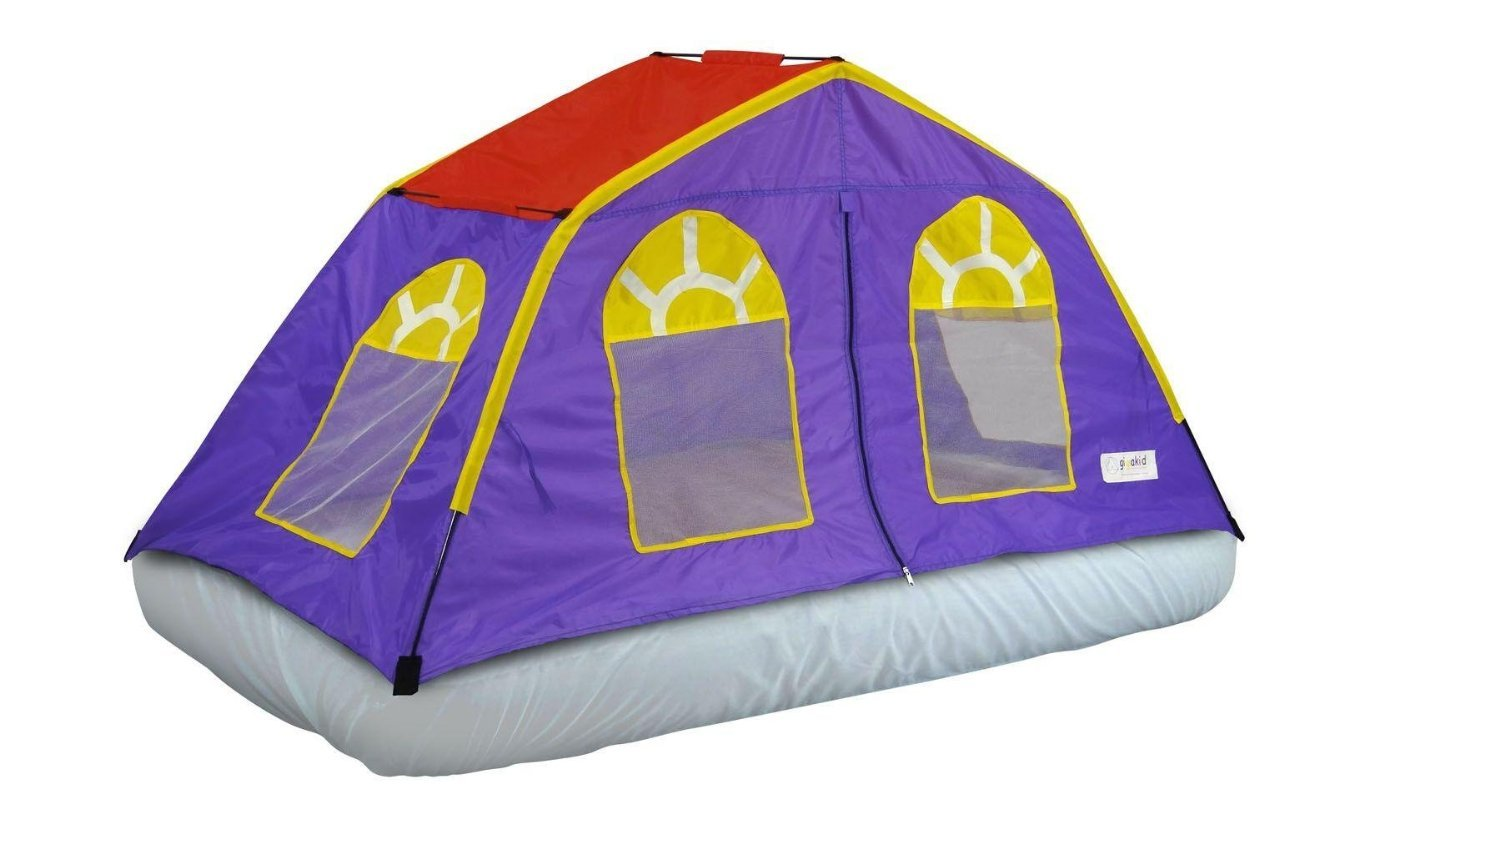 Giga Tent Dream House Bed Tent [並行輸入品] B01KONEHN8